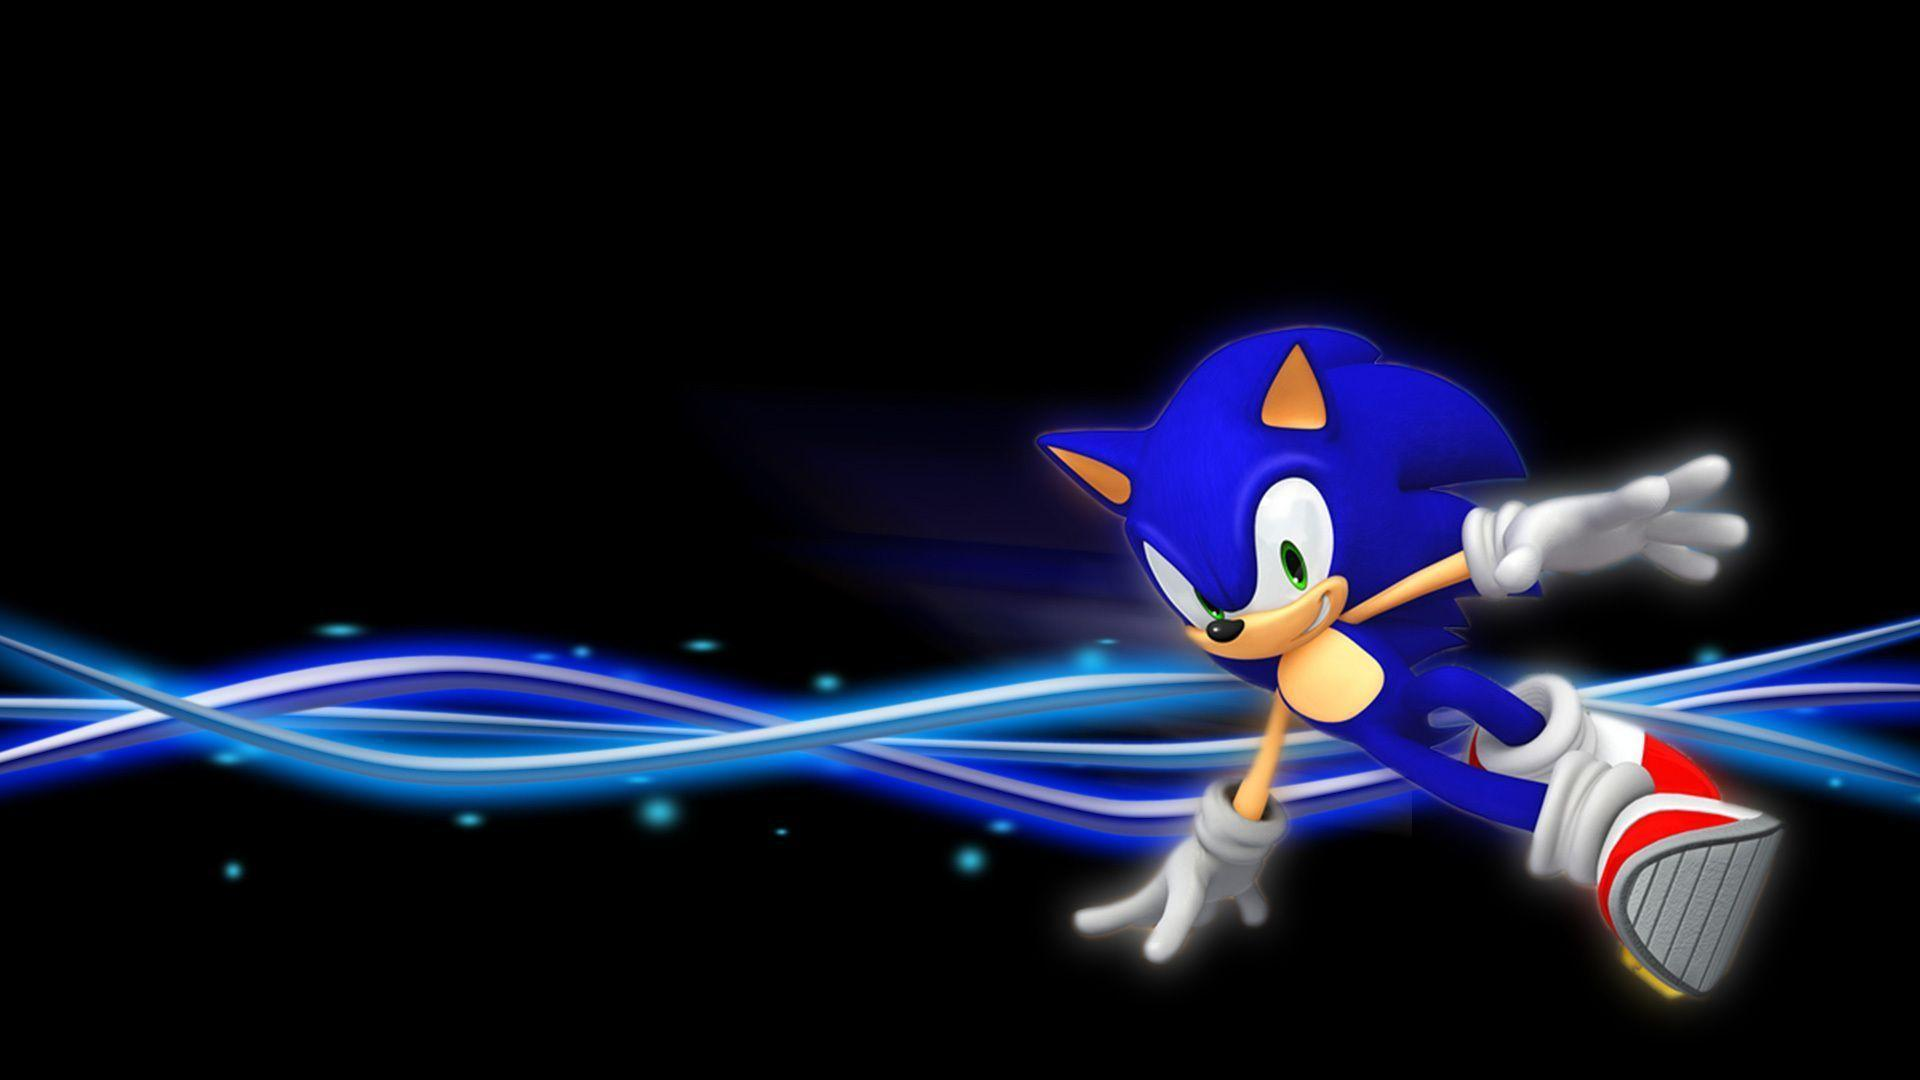 Wallpapers For > Classic Sonic The Hedgehog Wallpapers